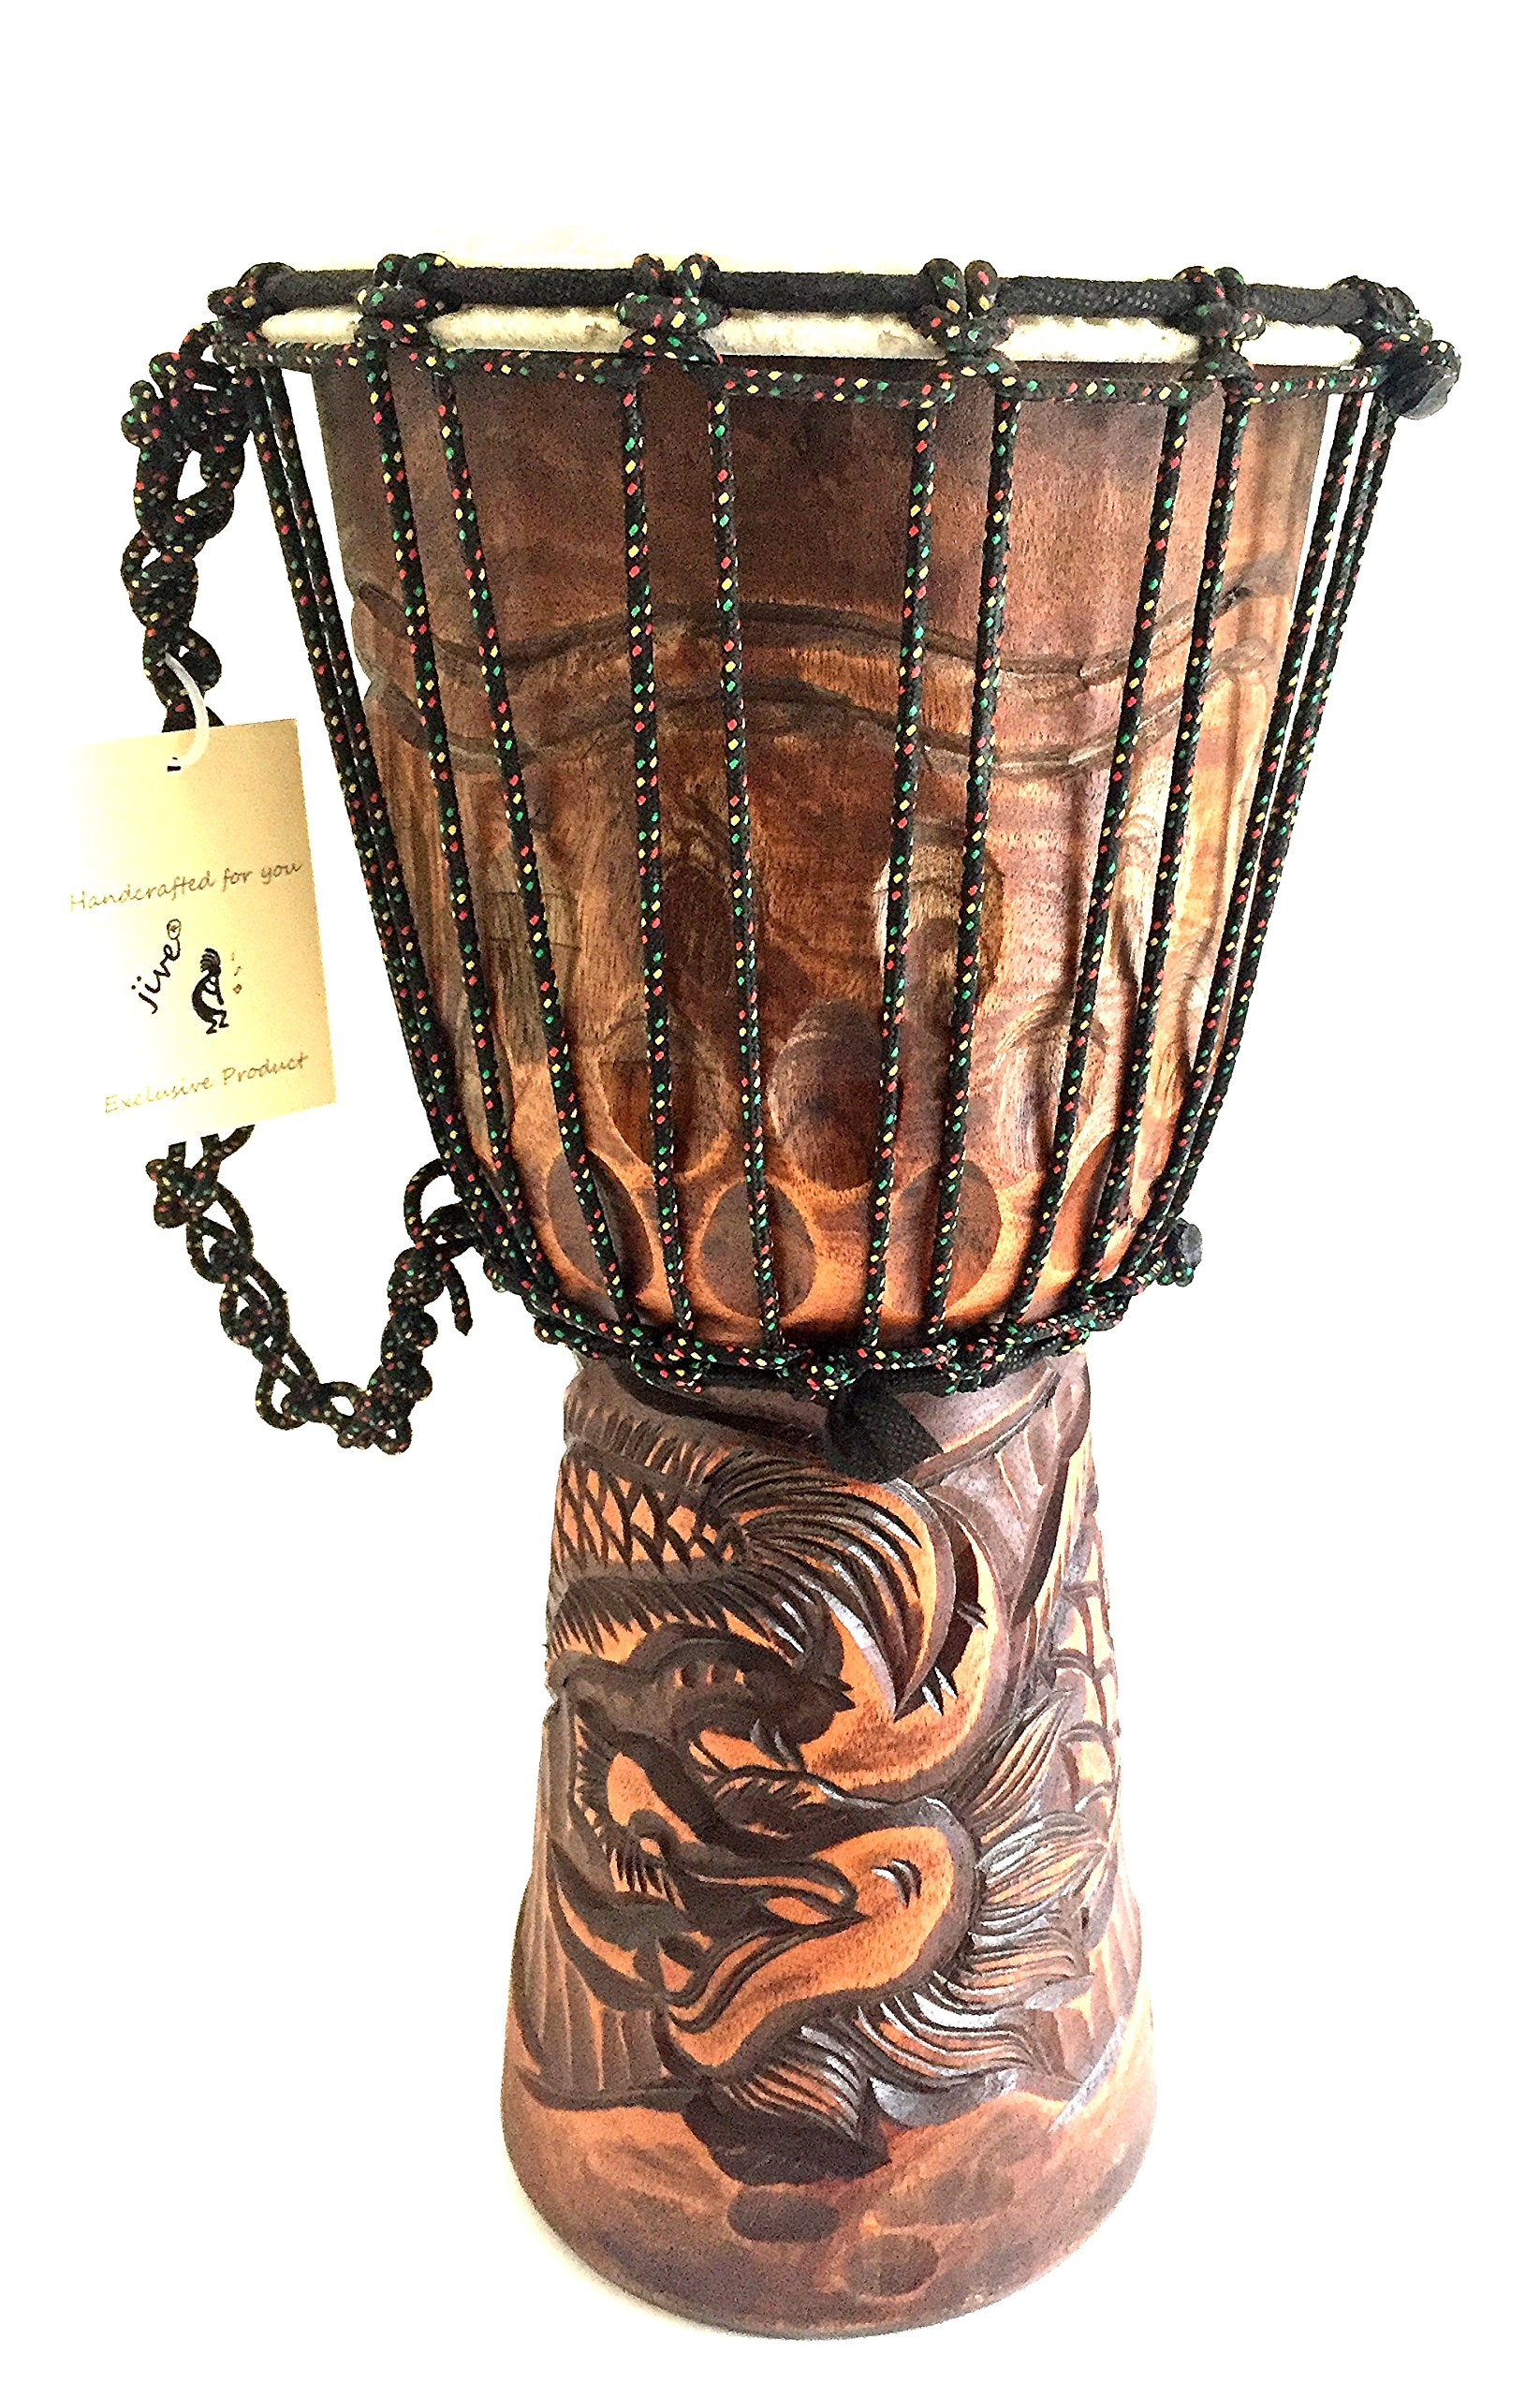 Djembe Drum SOLID Mahogany Wood Deep Carved Dragon Drum PROFESSIONAL QUALITY/ SOUND - XL SIZE - JIVE BRAND